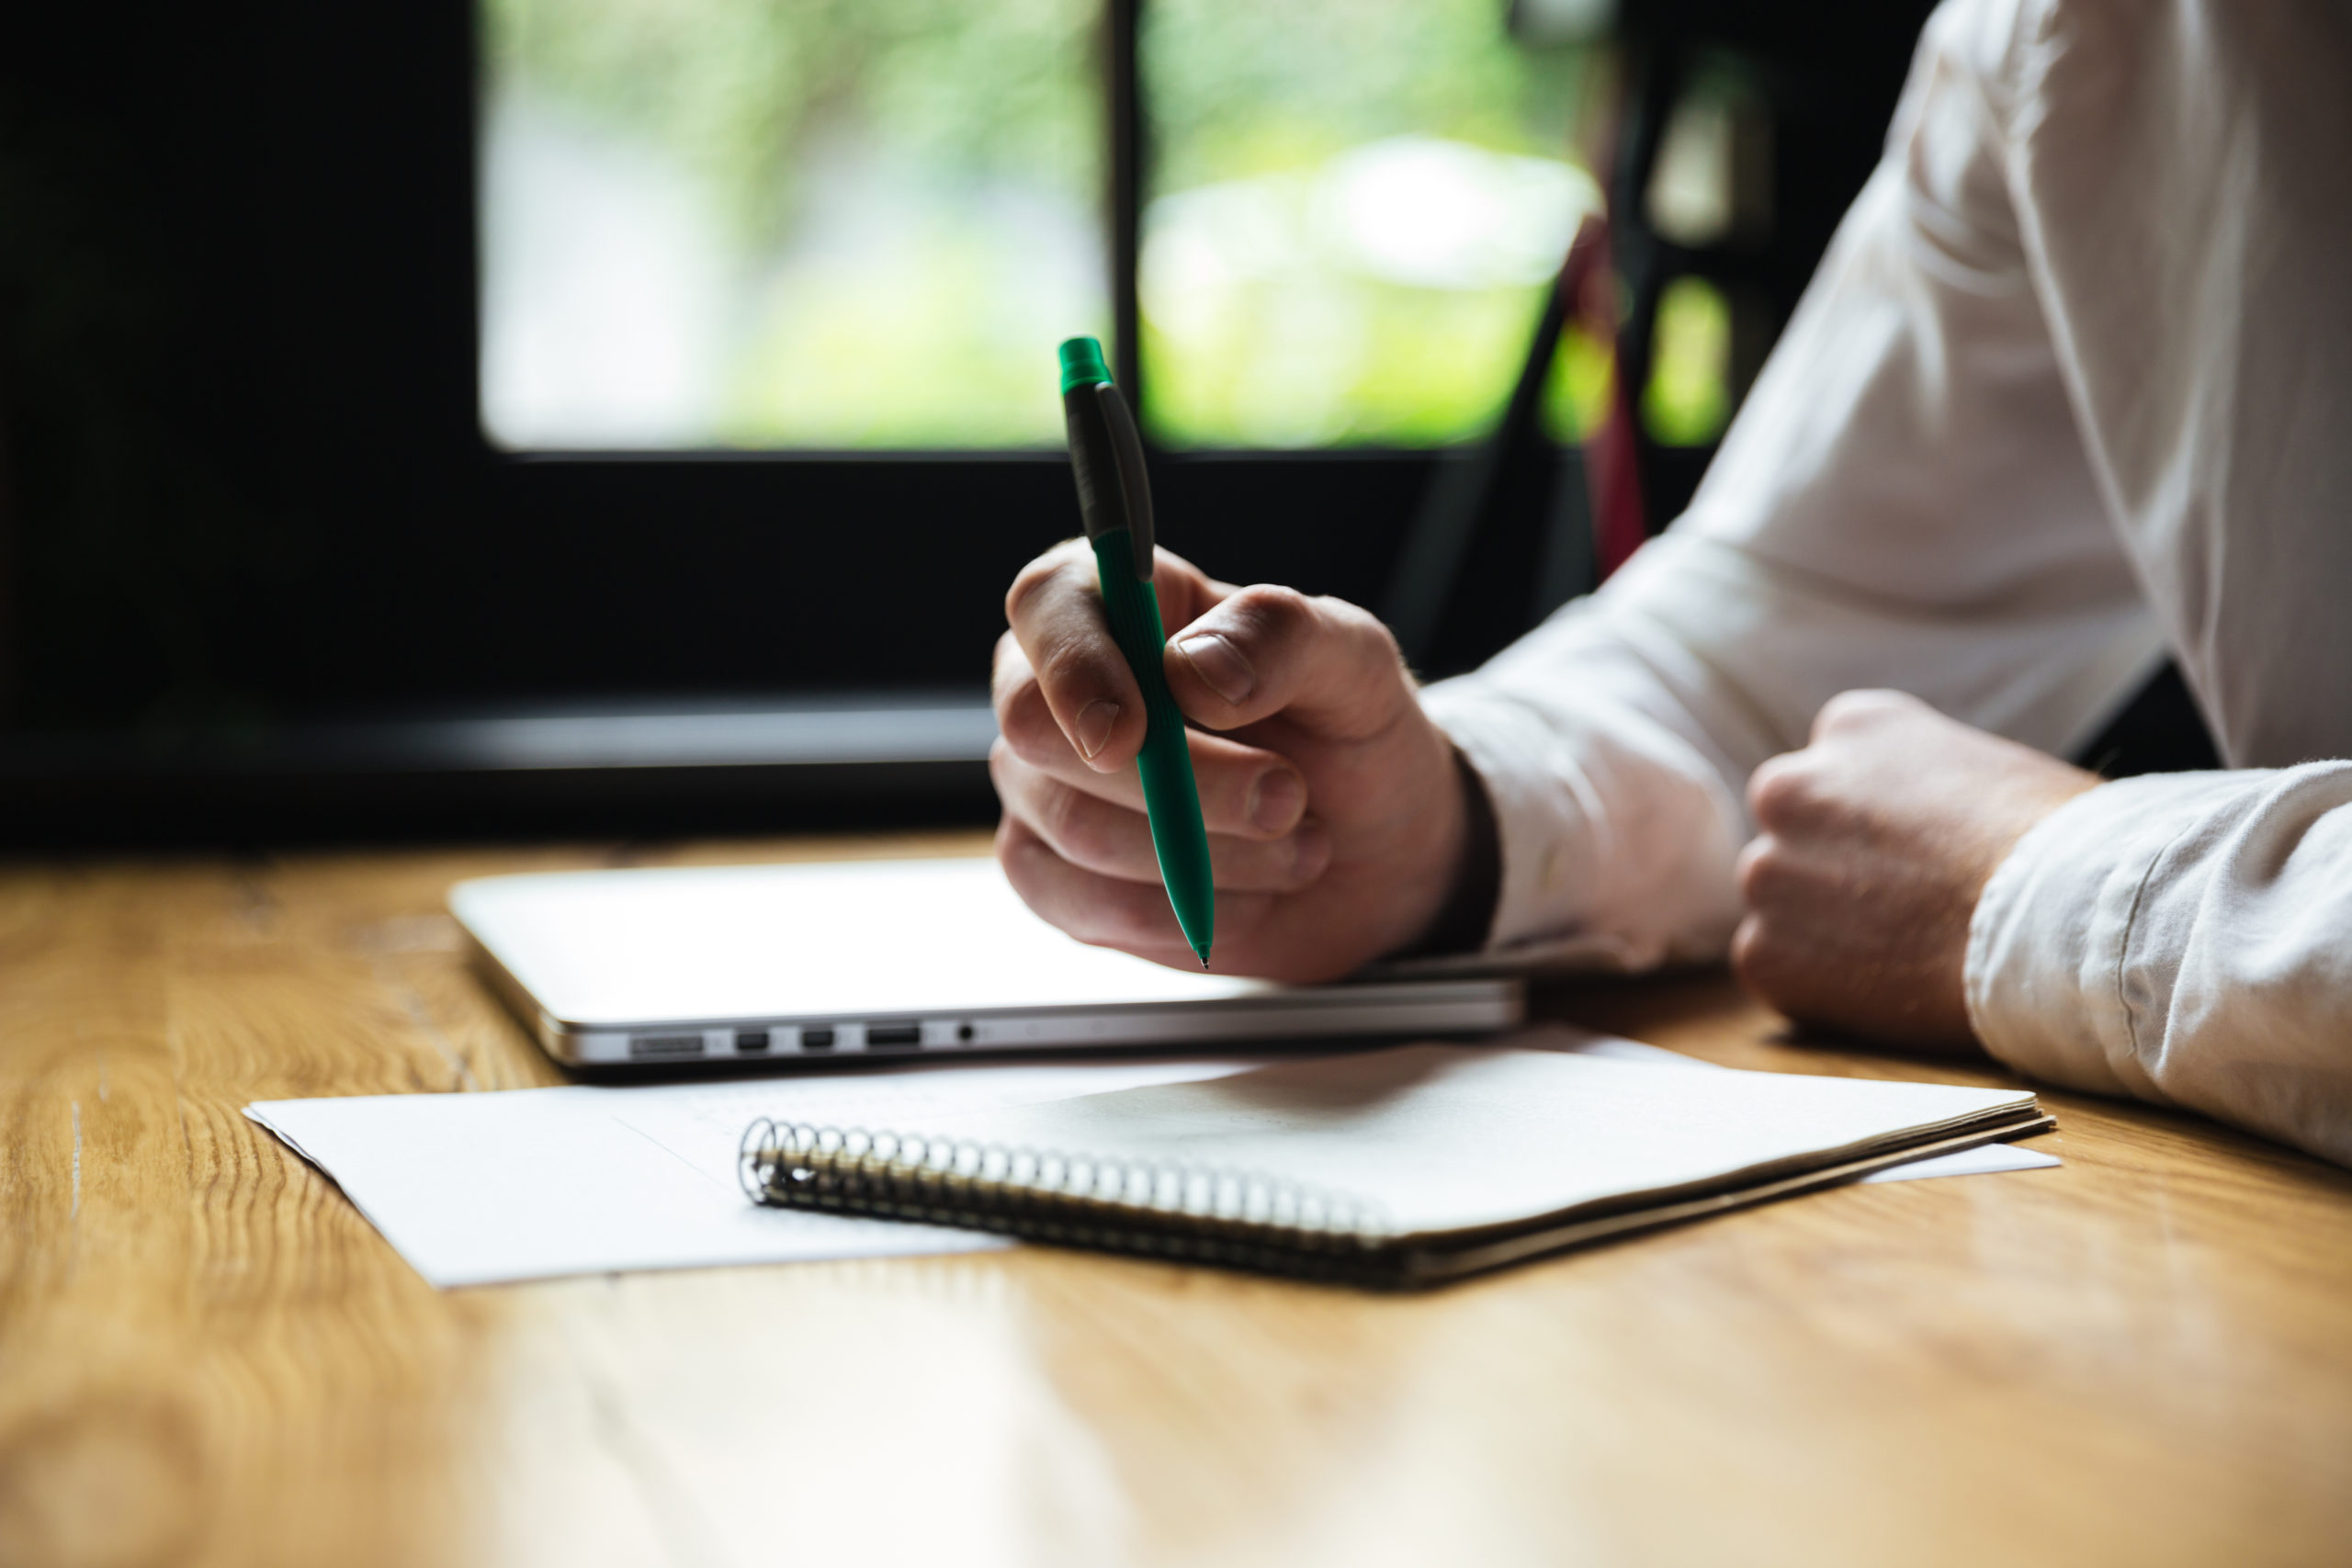 Cropped photo of mans hand holding green pen, while taking notes